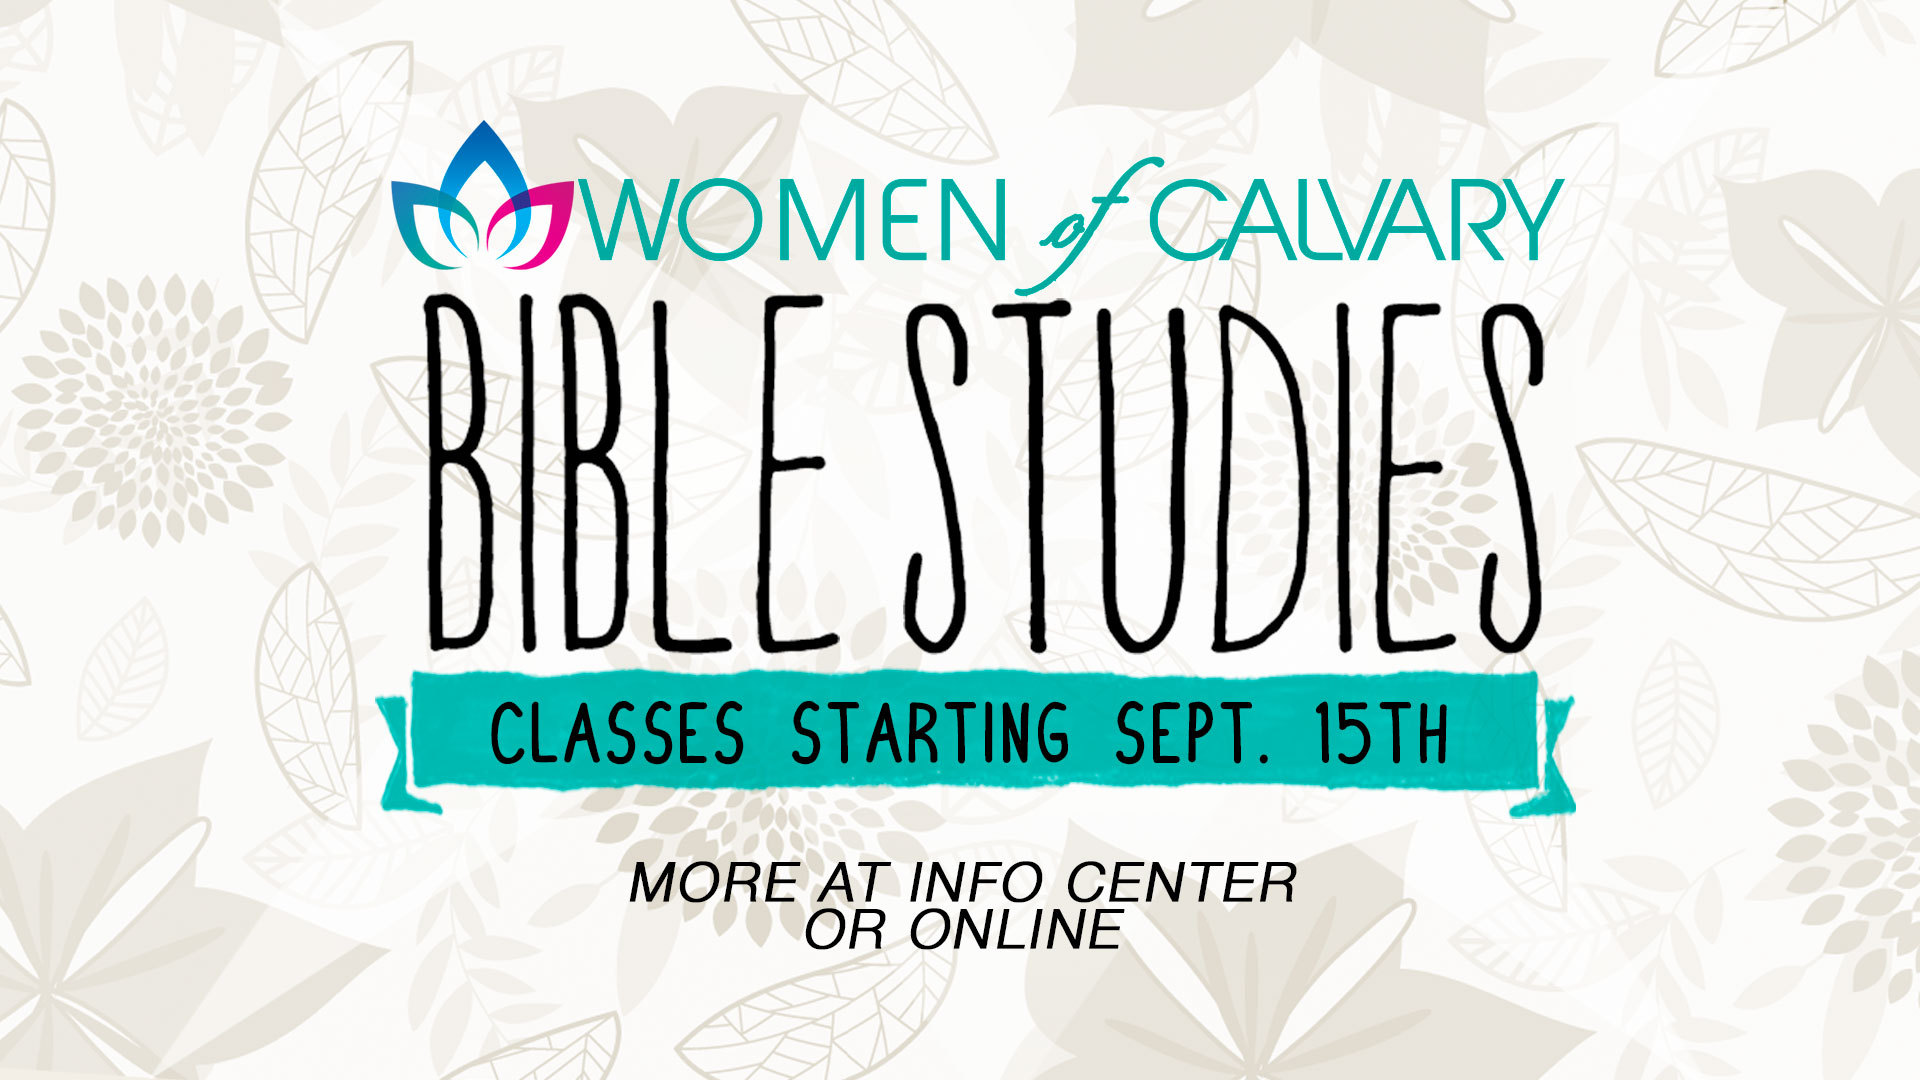 calvary single girls We would like to welcome you and your child and extend our appreciation for the opportunity to serve you through the christian education ministries of the sanford christian academy, a ministry of calvary baptist church.